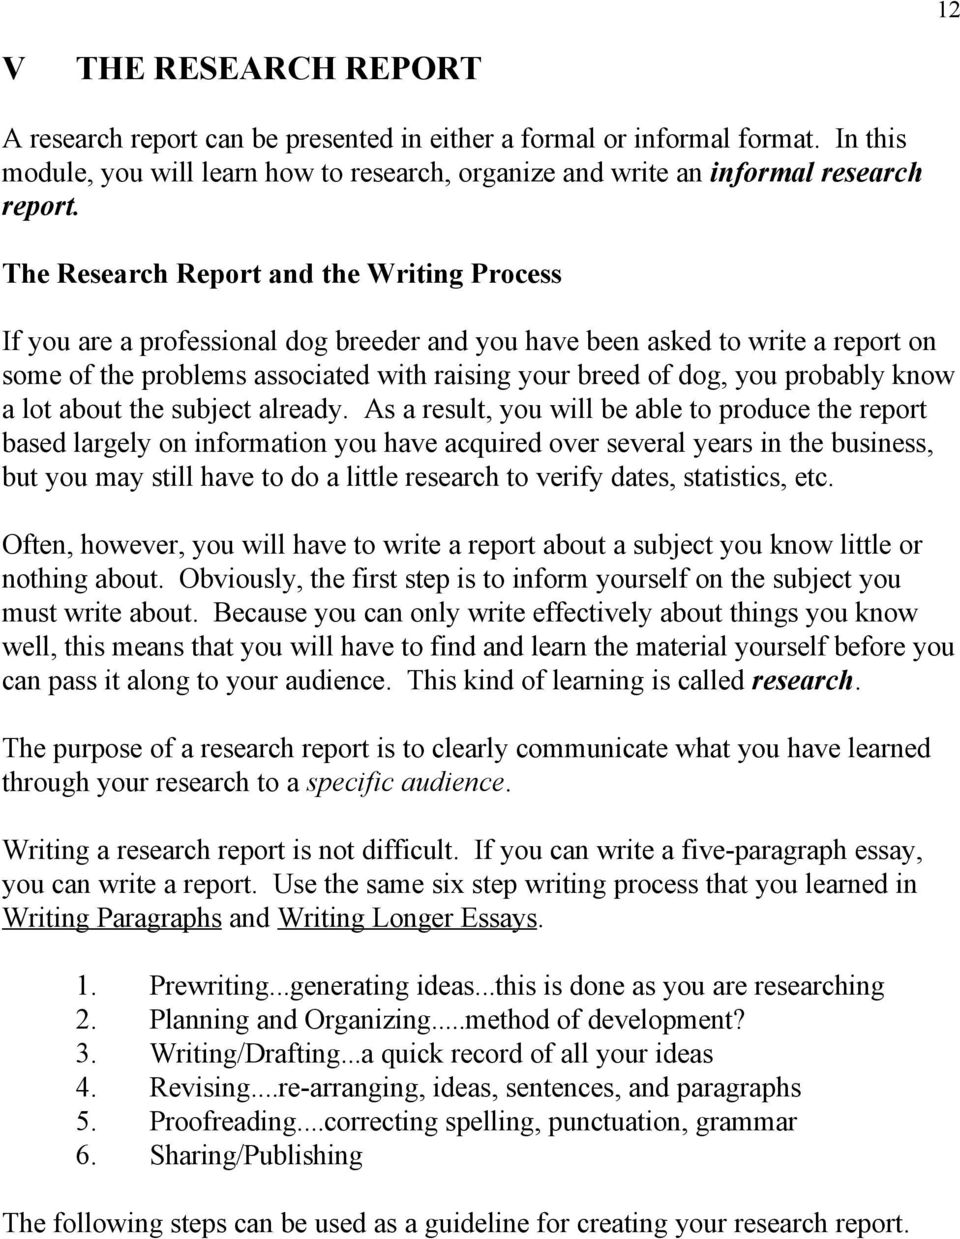 How To Write An Mba Essay